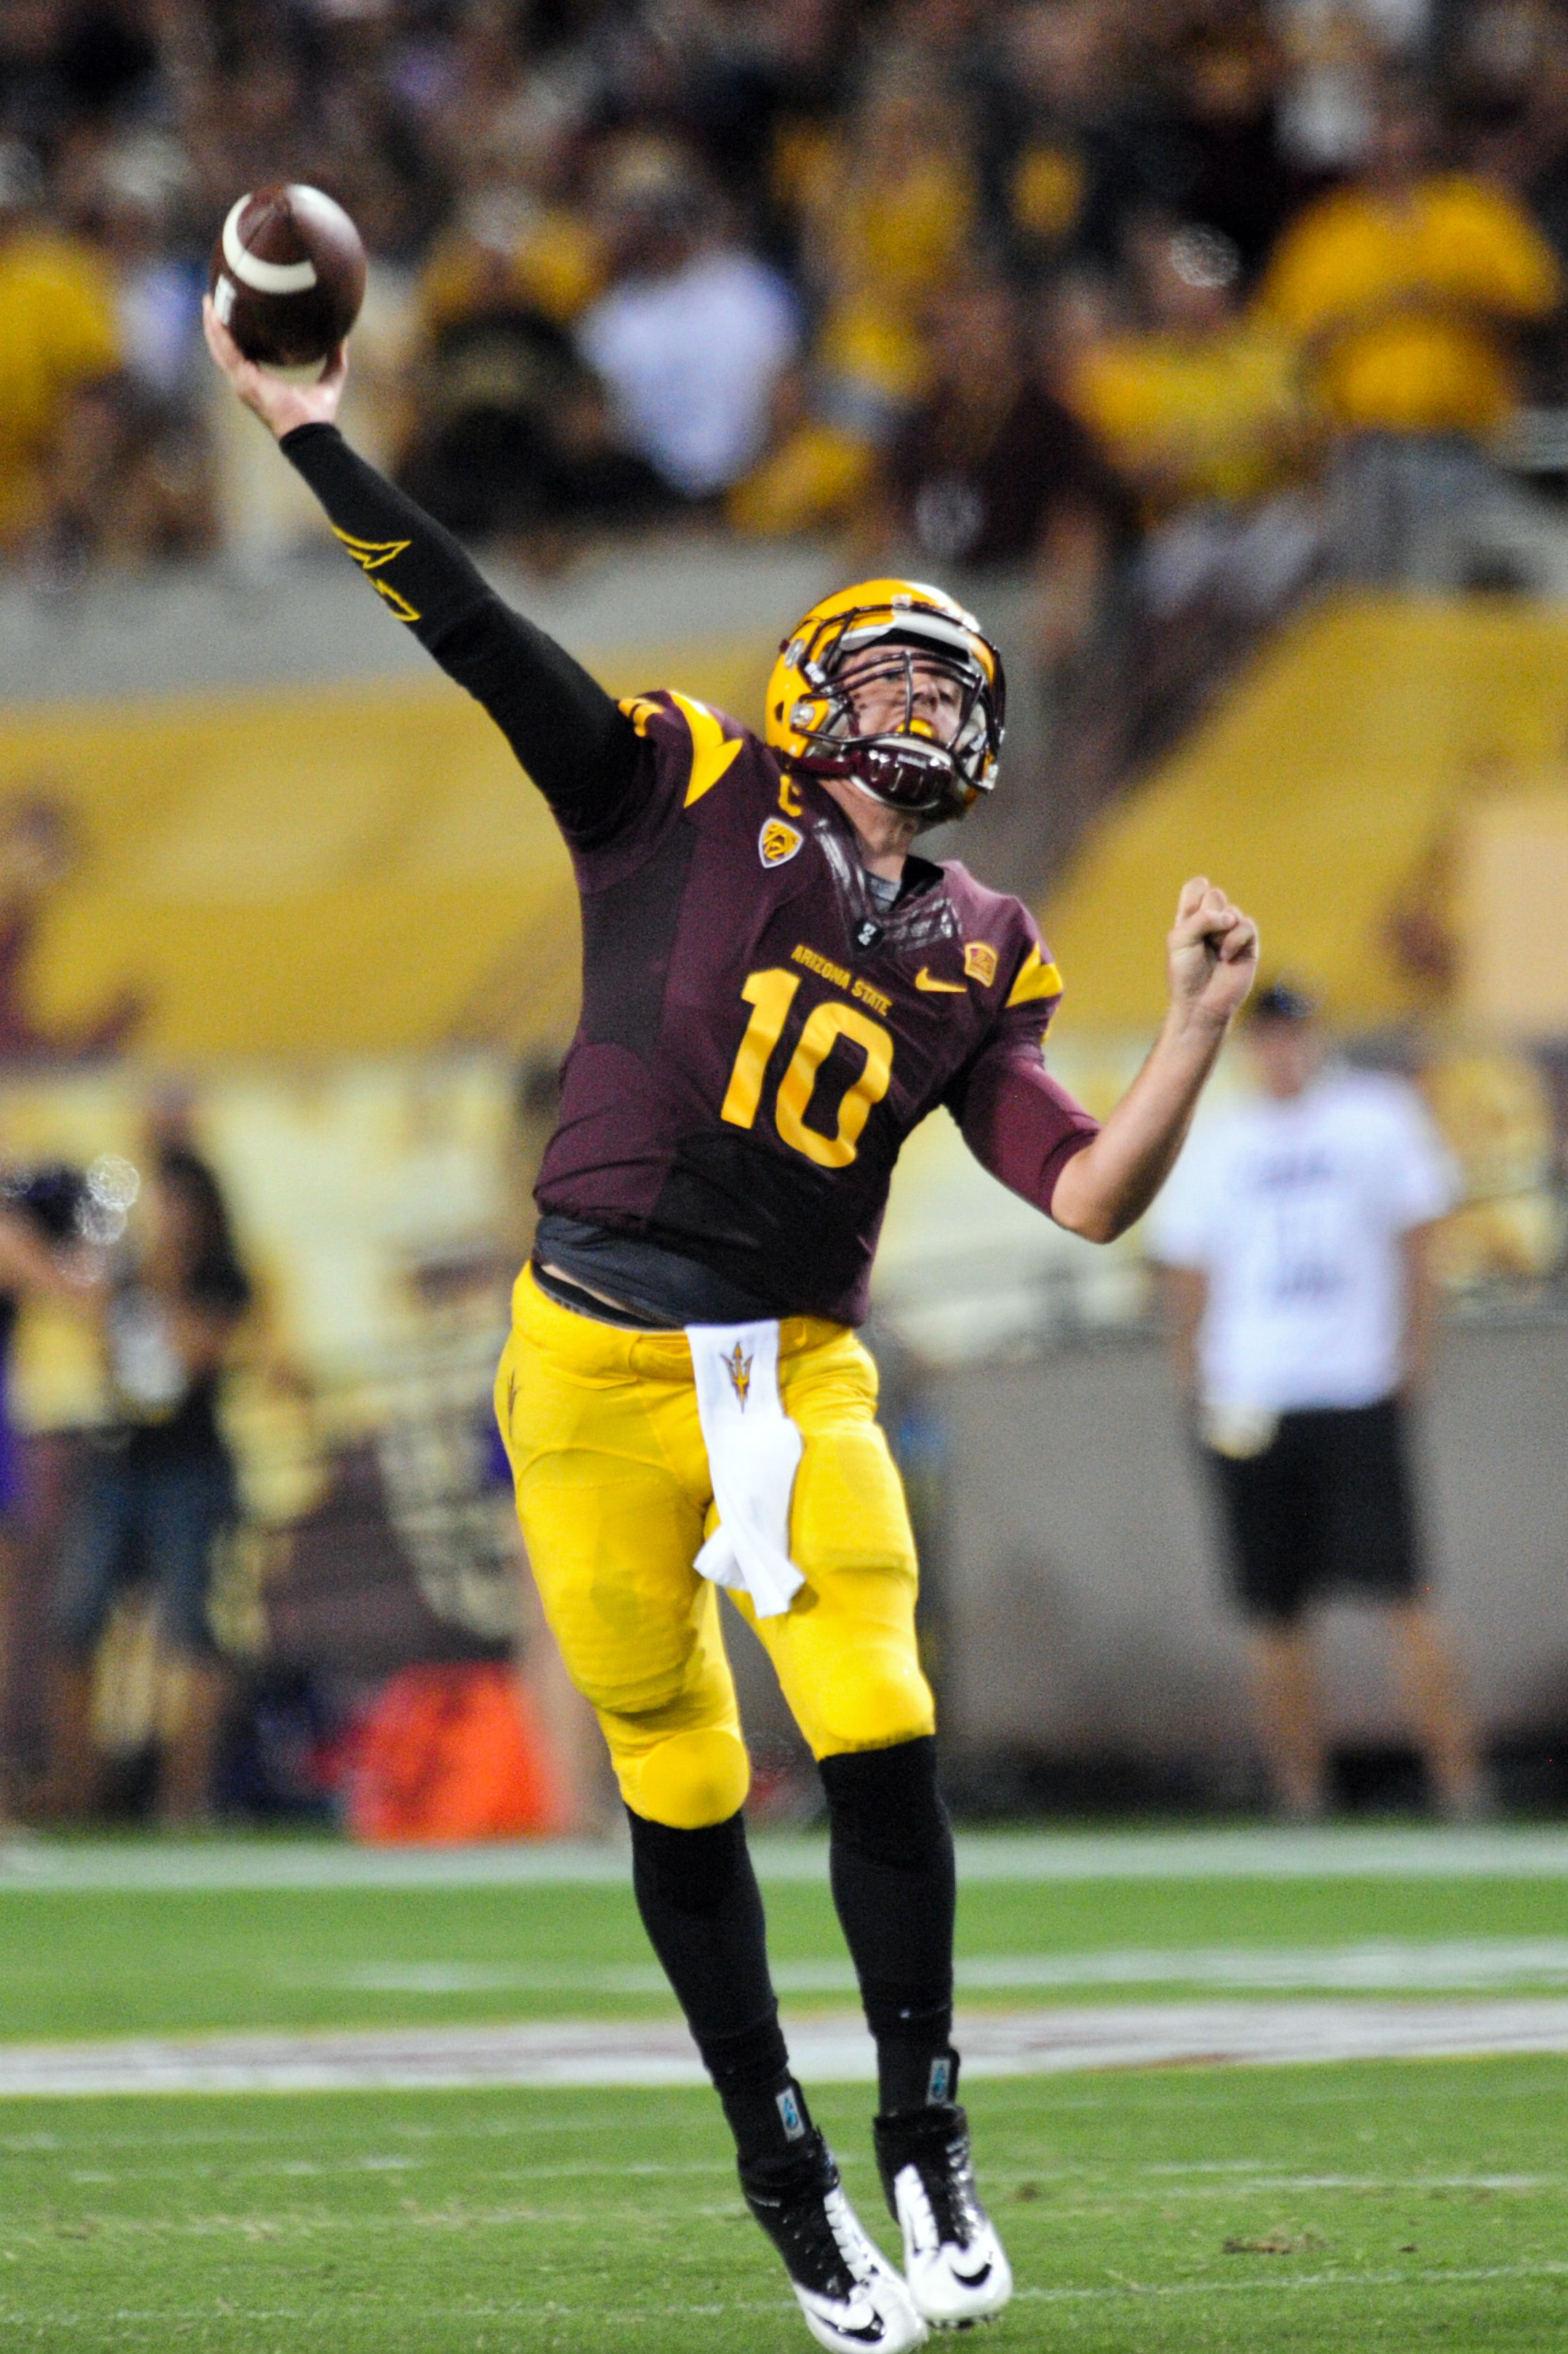 The Utah defense will be forced to account for ASU quarterback Taylor Kelly both running and passing.